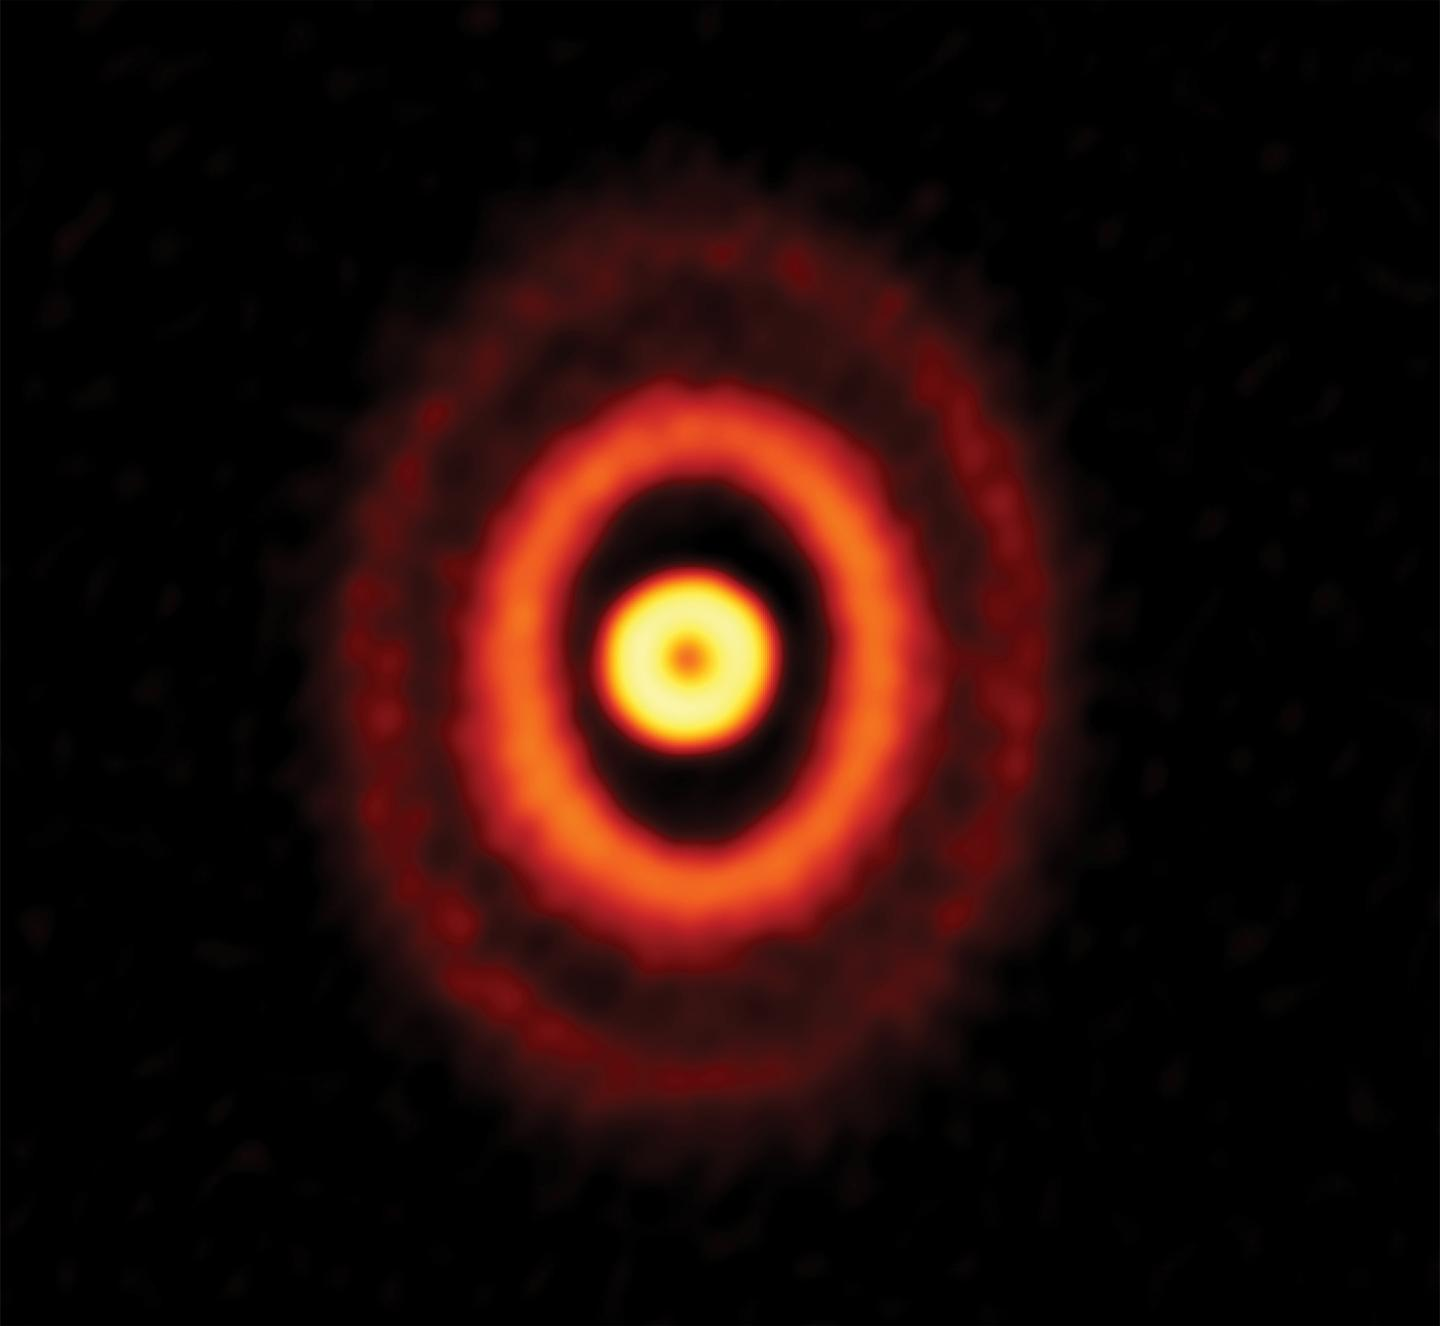 ALMA image of the protoplanetary disk around the triple young star GW Orionis